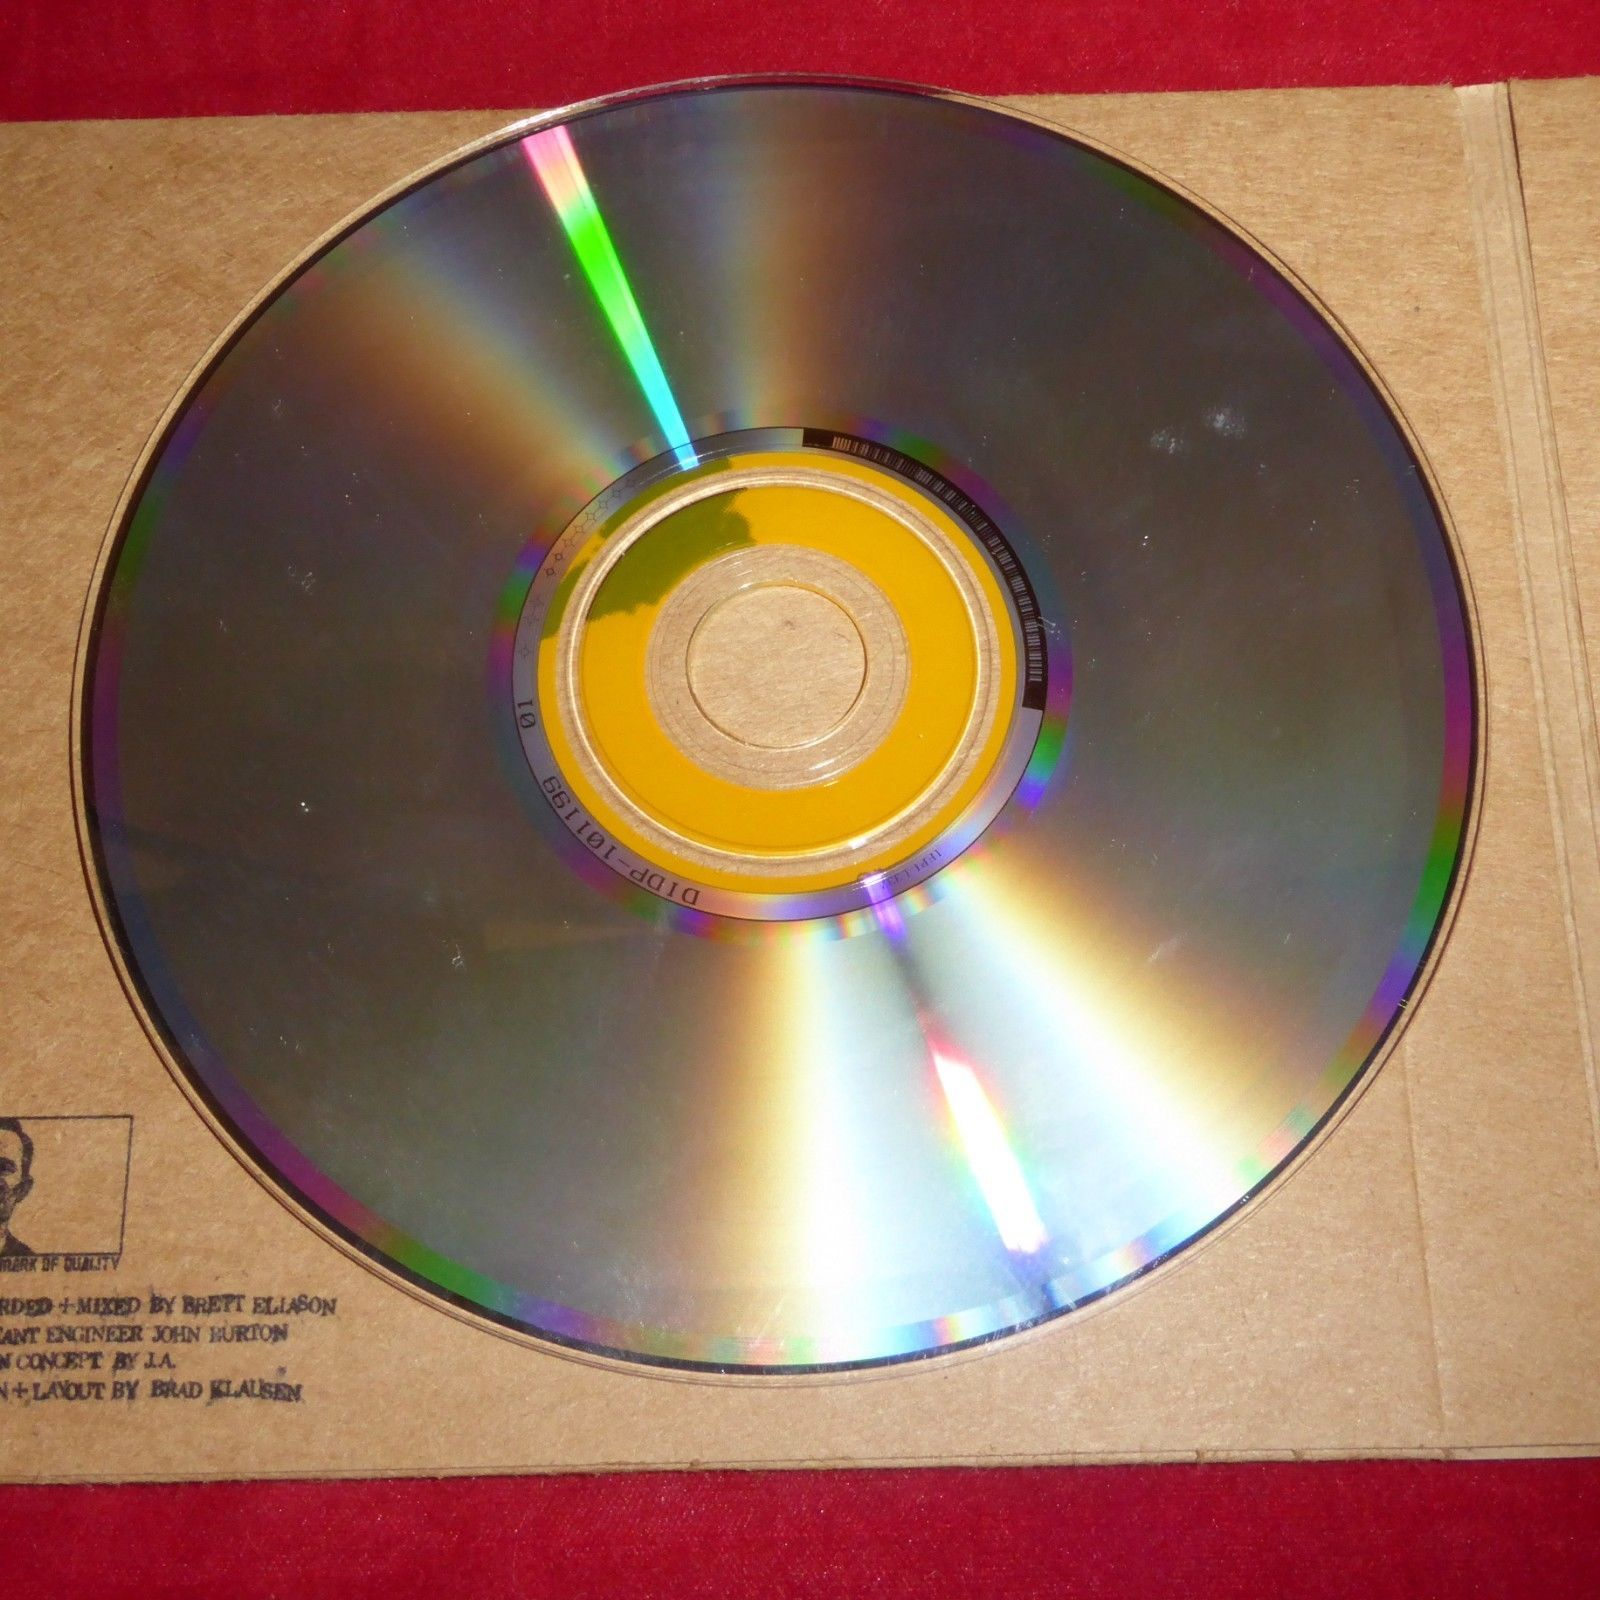 Pearl Jam Live 2 CD Official Bootleg #7 and similar items